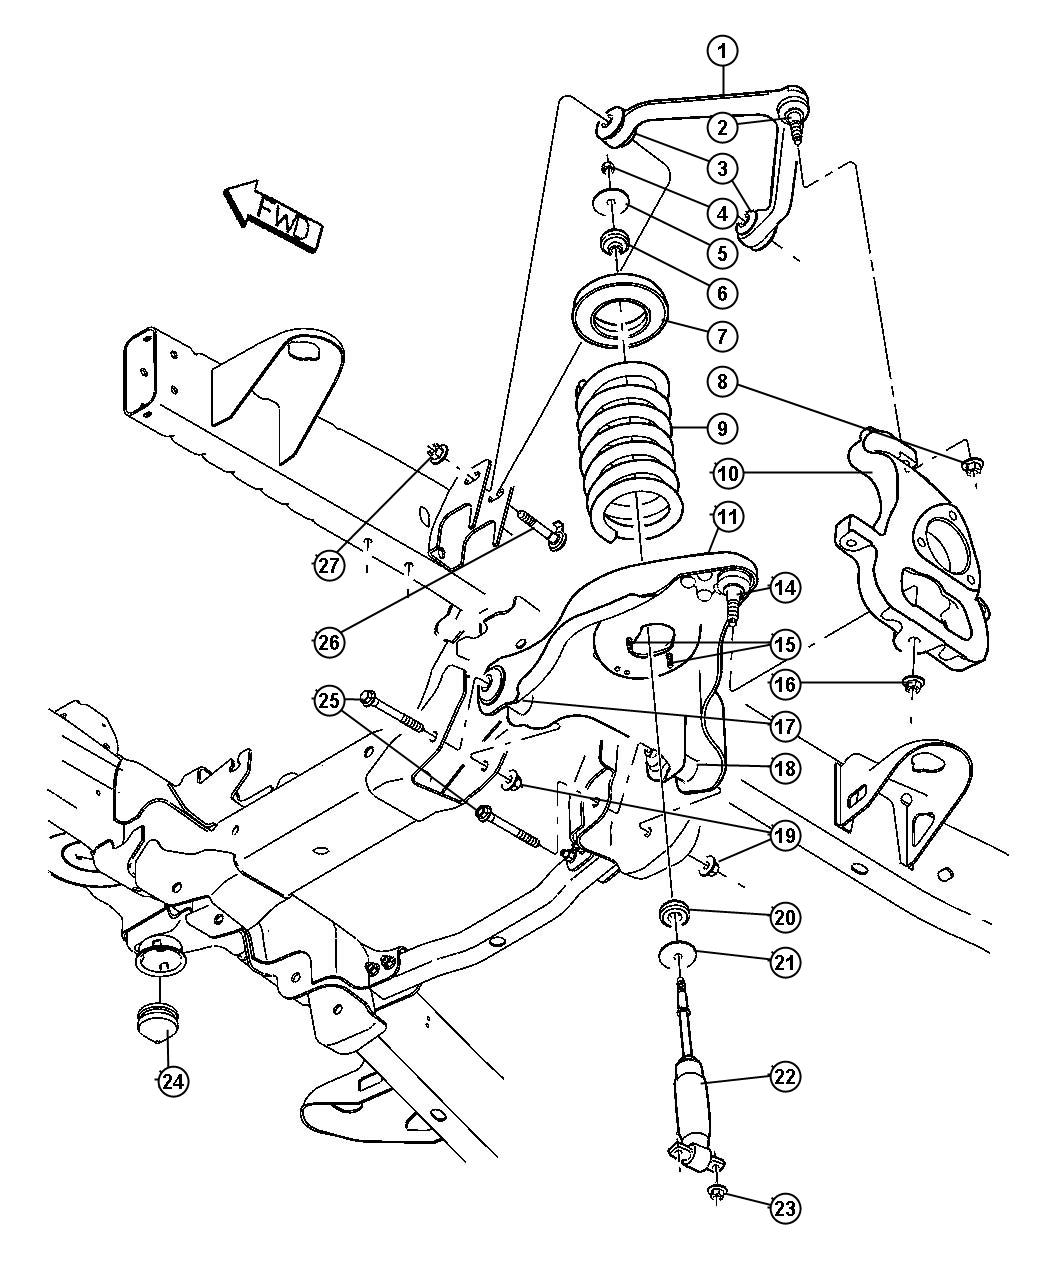 05 F350 Front Suspension Diagram, 05, Free Engine Image